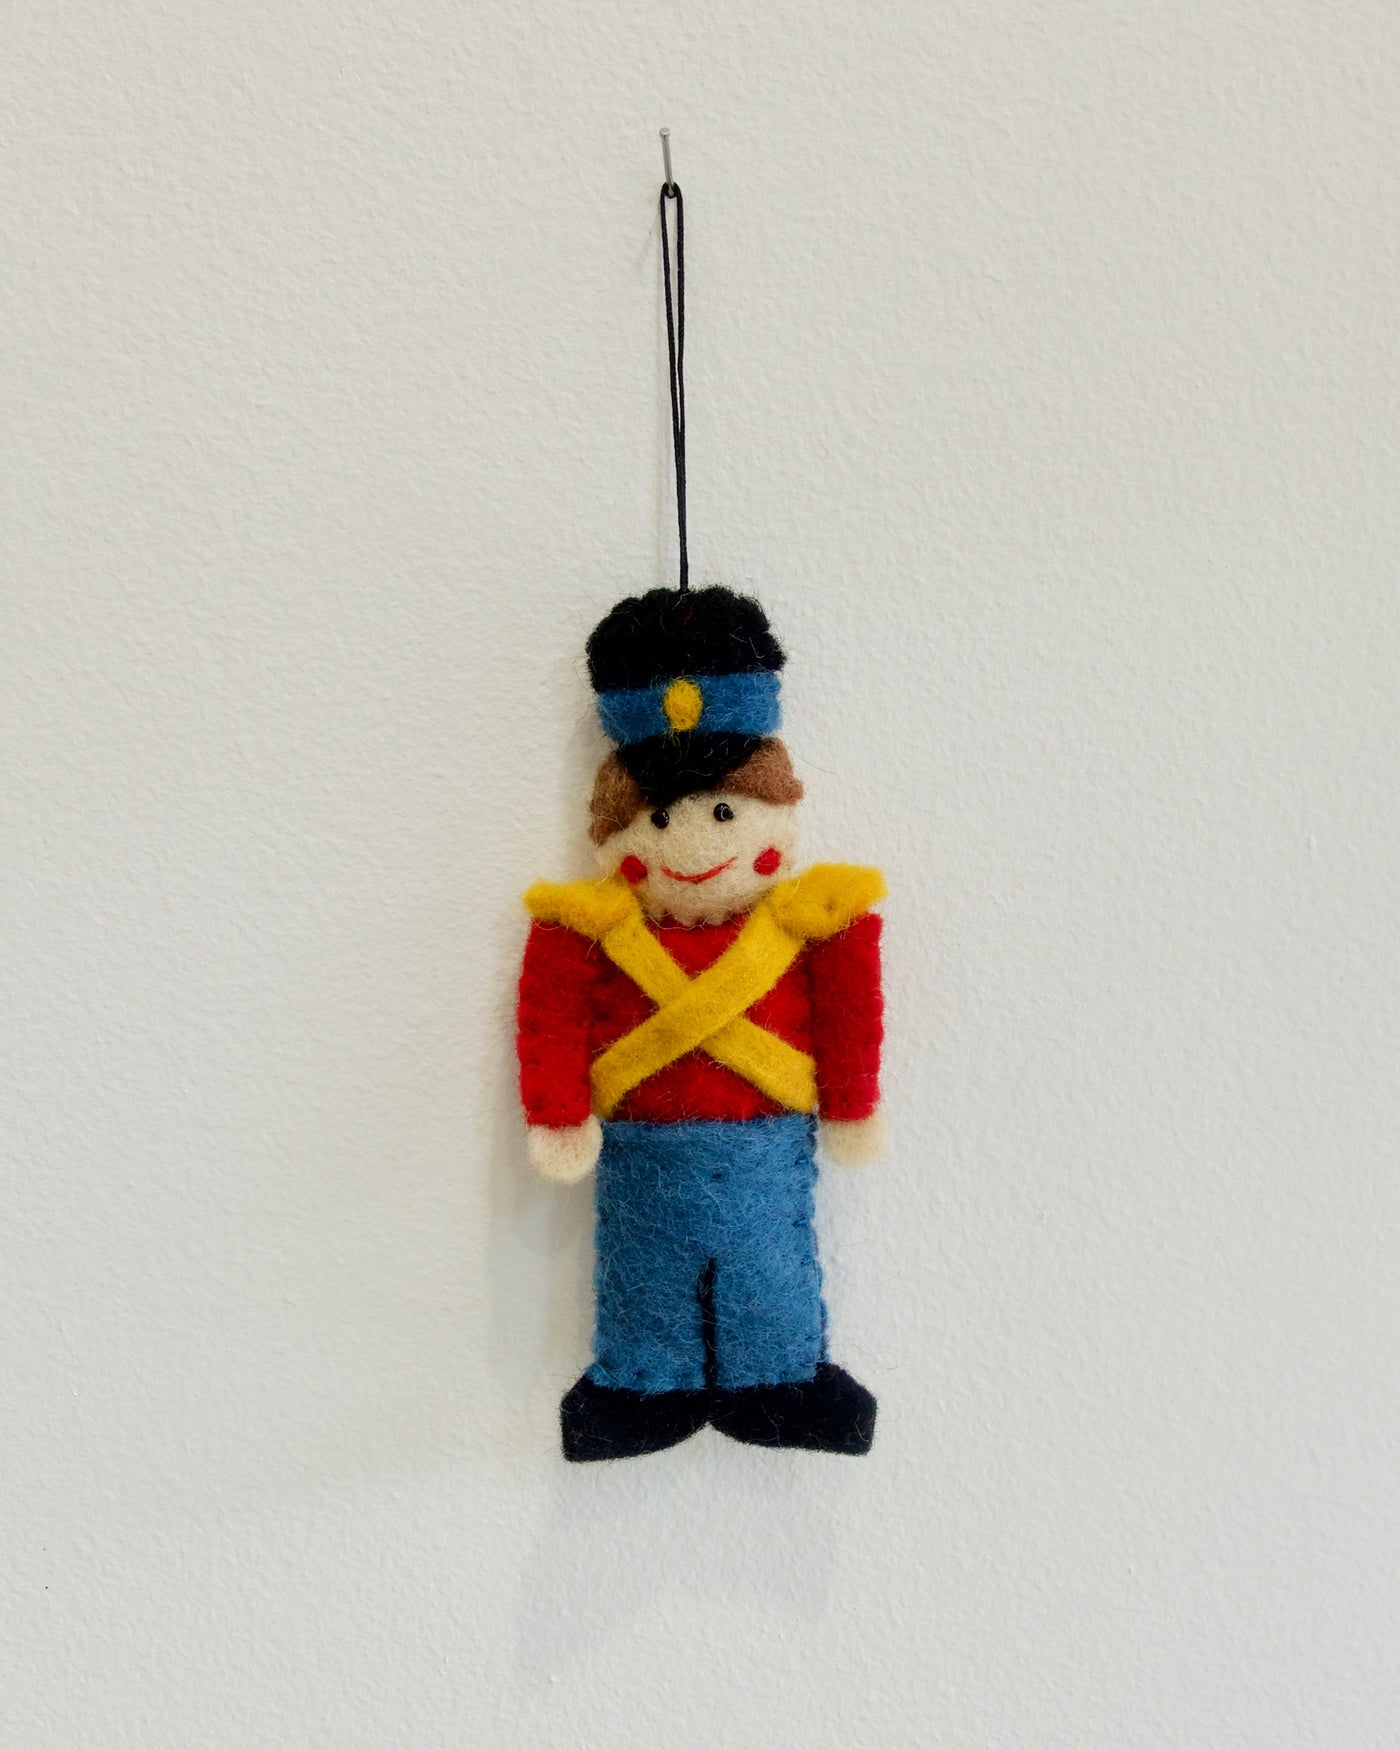 Soldier Christmas Ornament